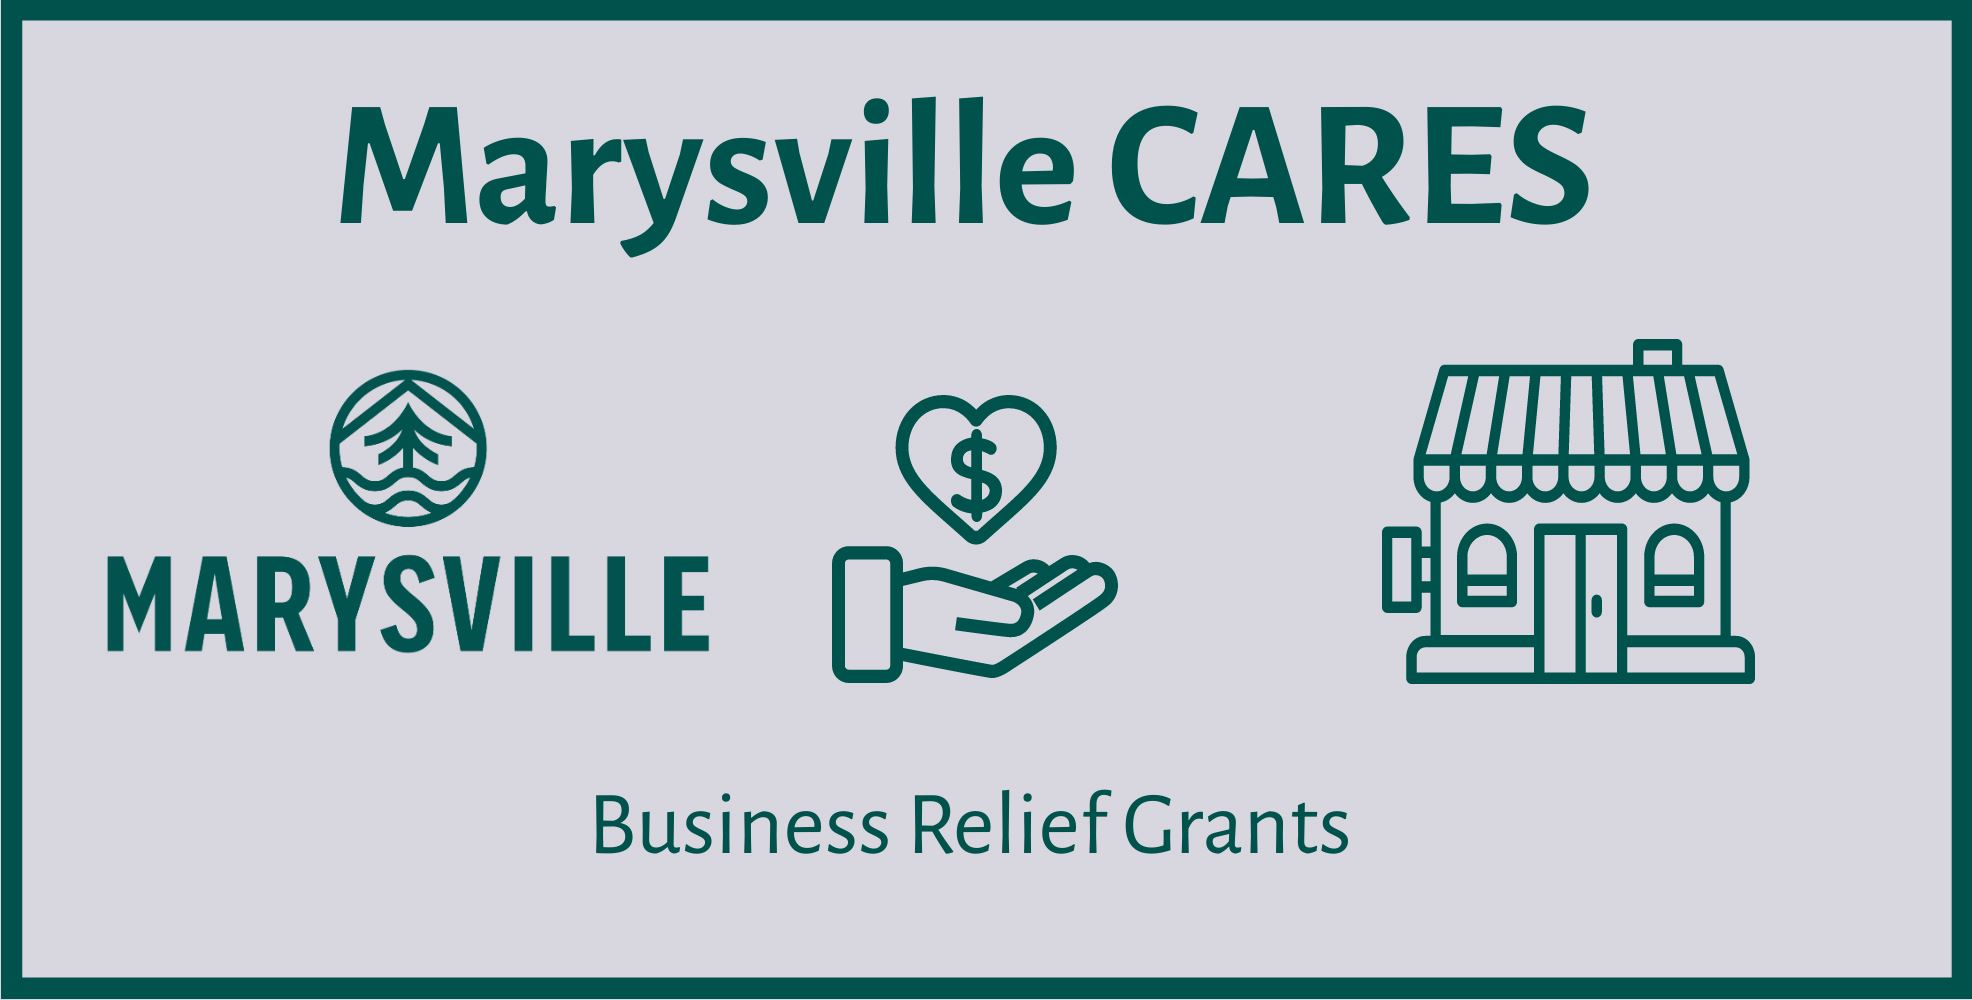 Marysville CARES business relief grants